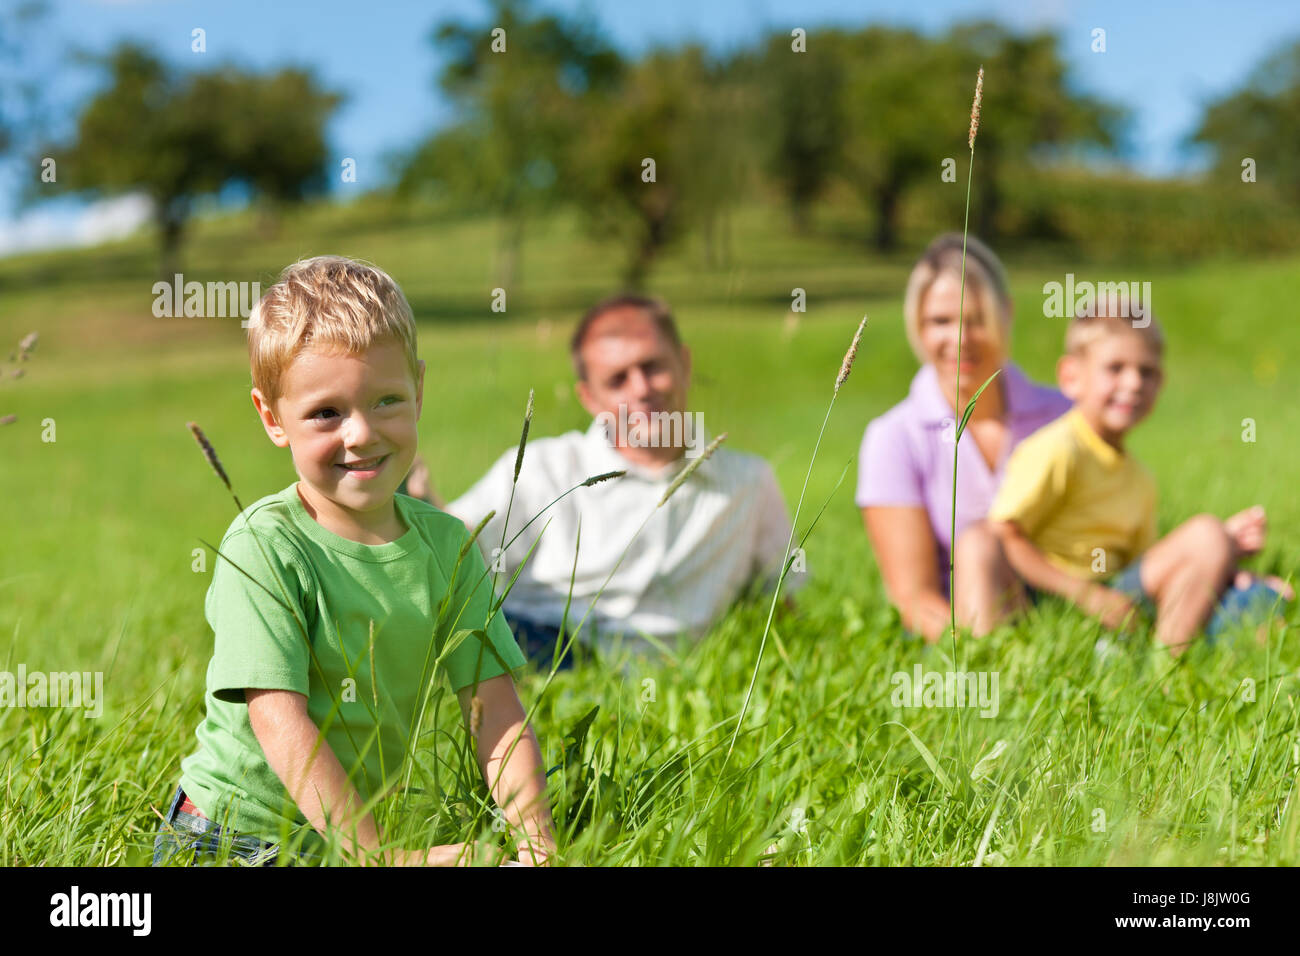 game, tournament, play, playing, plays, played, summer, summerly, mother, mom, Stock Photo